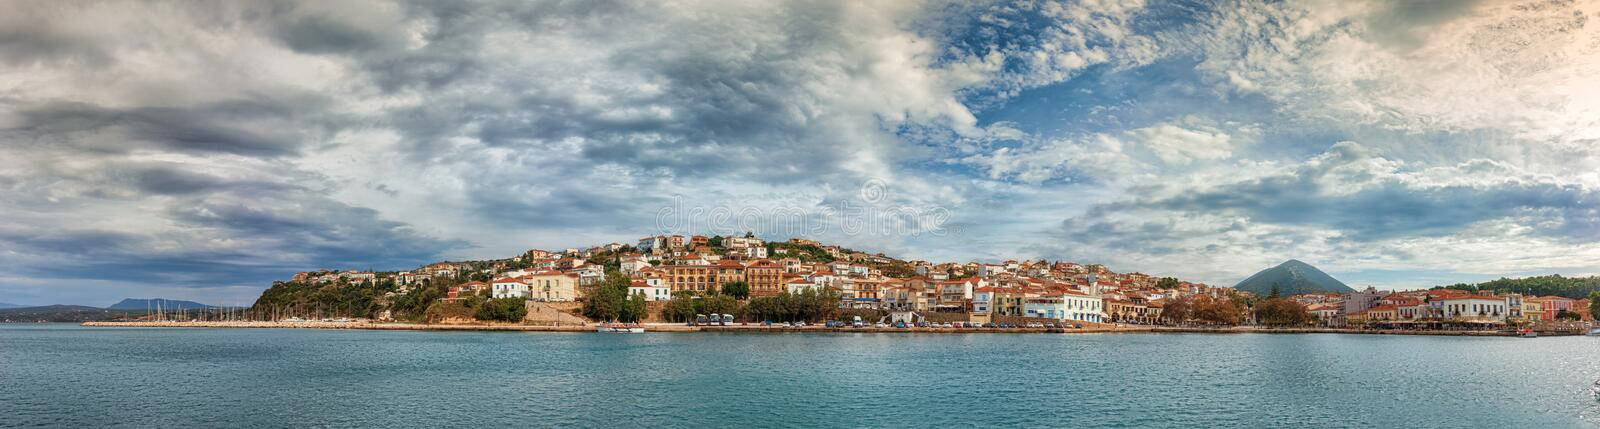 Panoramic view of the waterfront of Pylos, Greece royalty free stock images